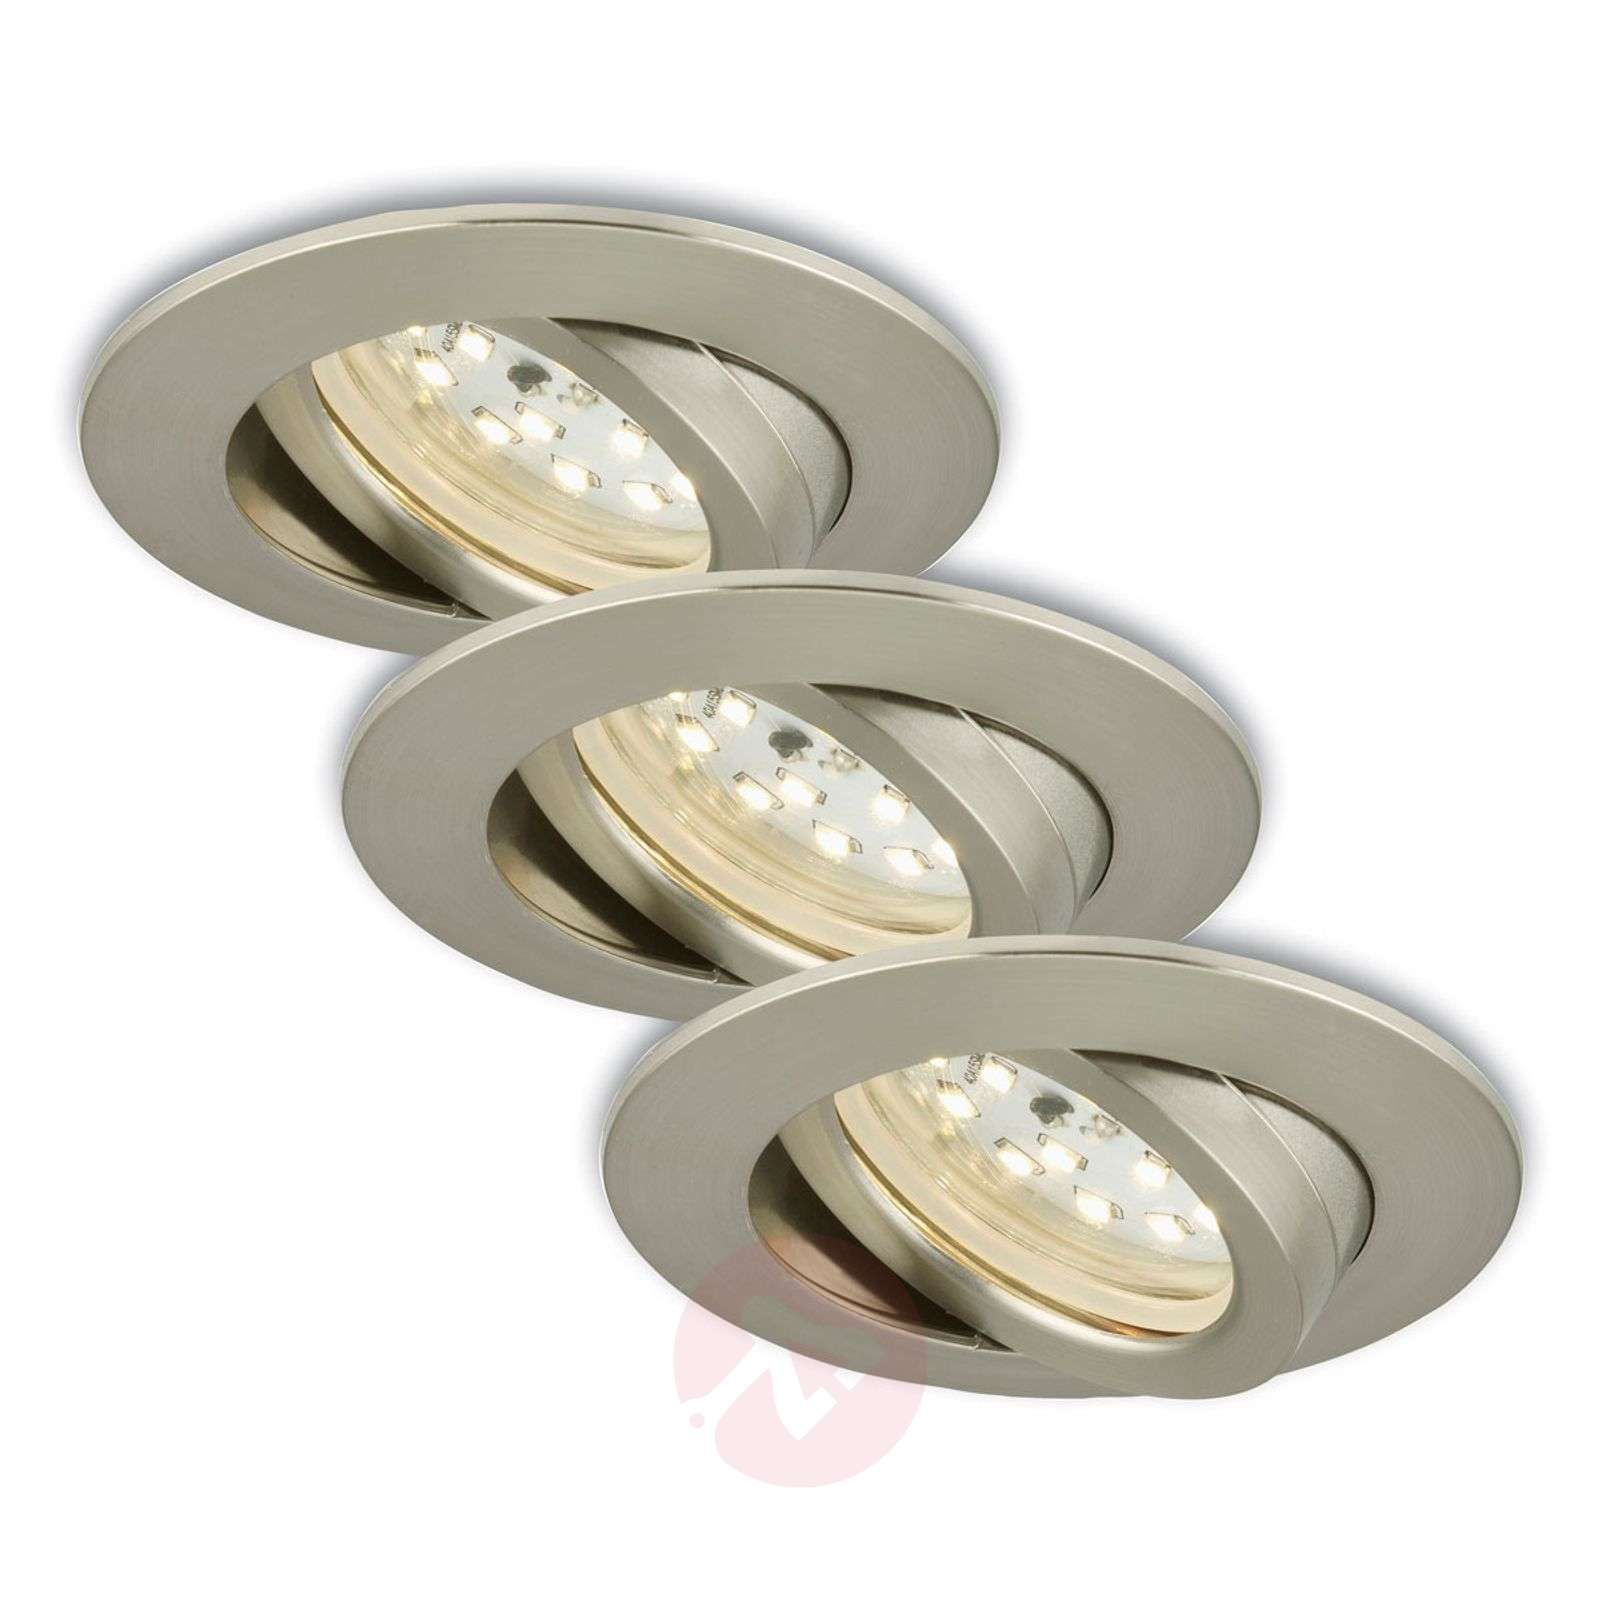 Foco LED empotrable girat., 3 unid., mate-níquel-1510288-01